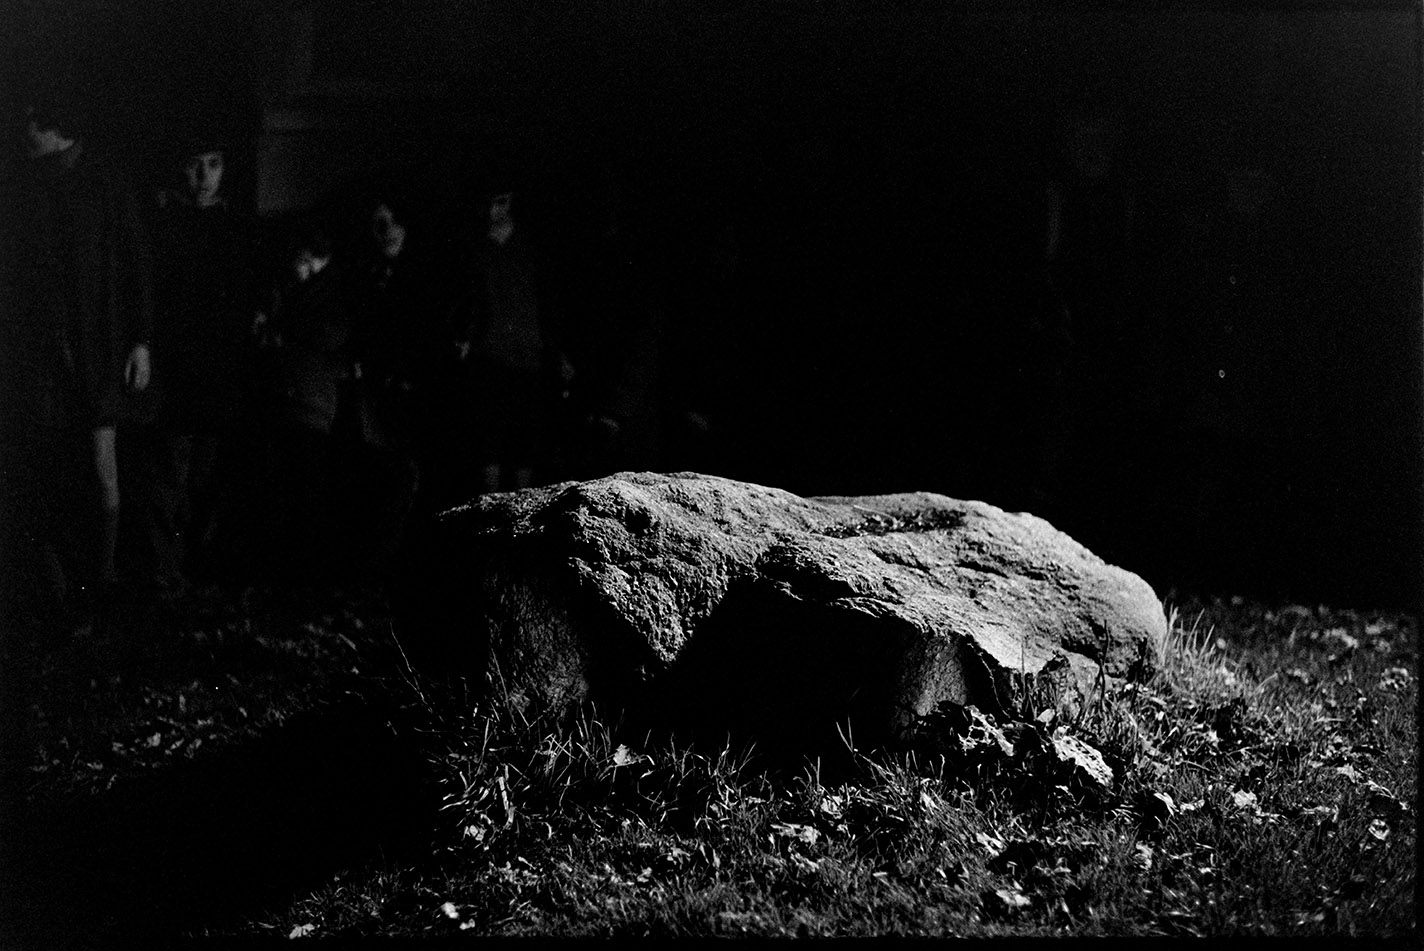 Turning the Devil's Stone, Shebbear, 5 November 1974